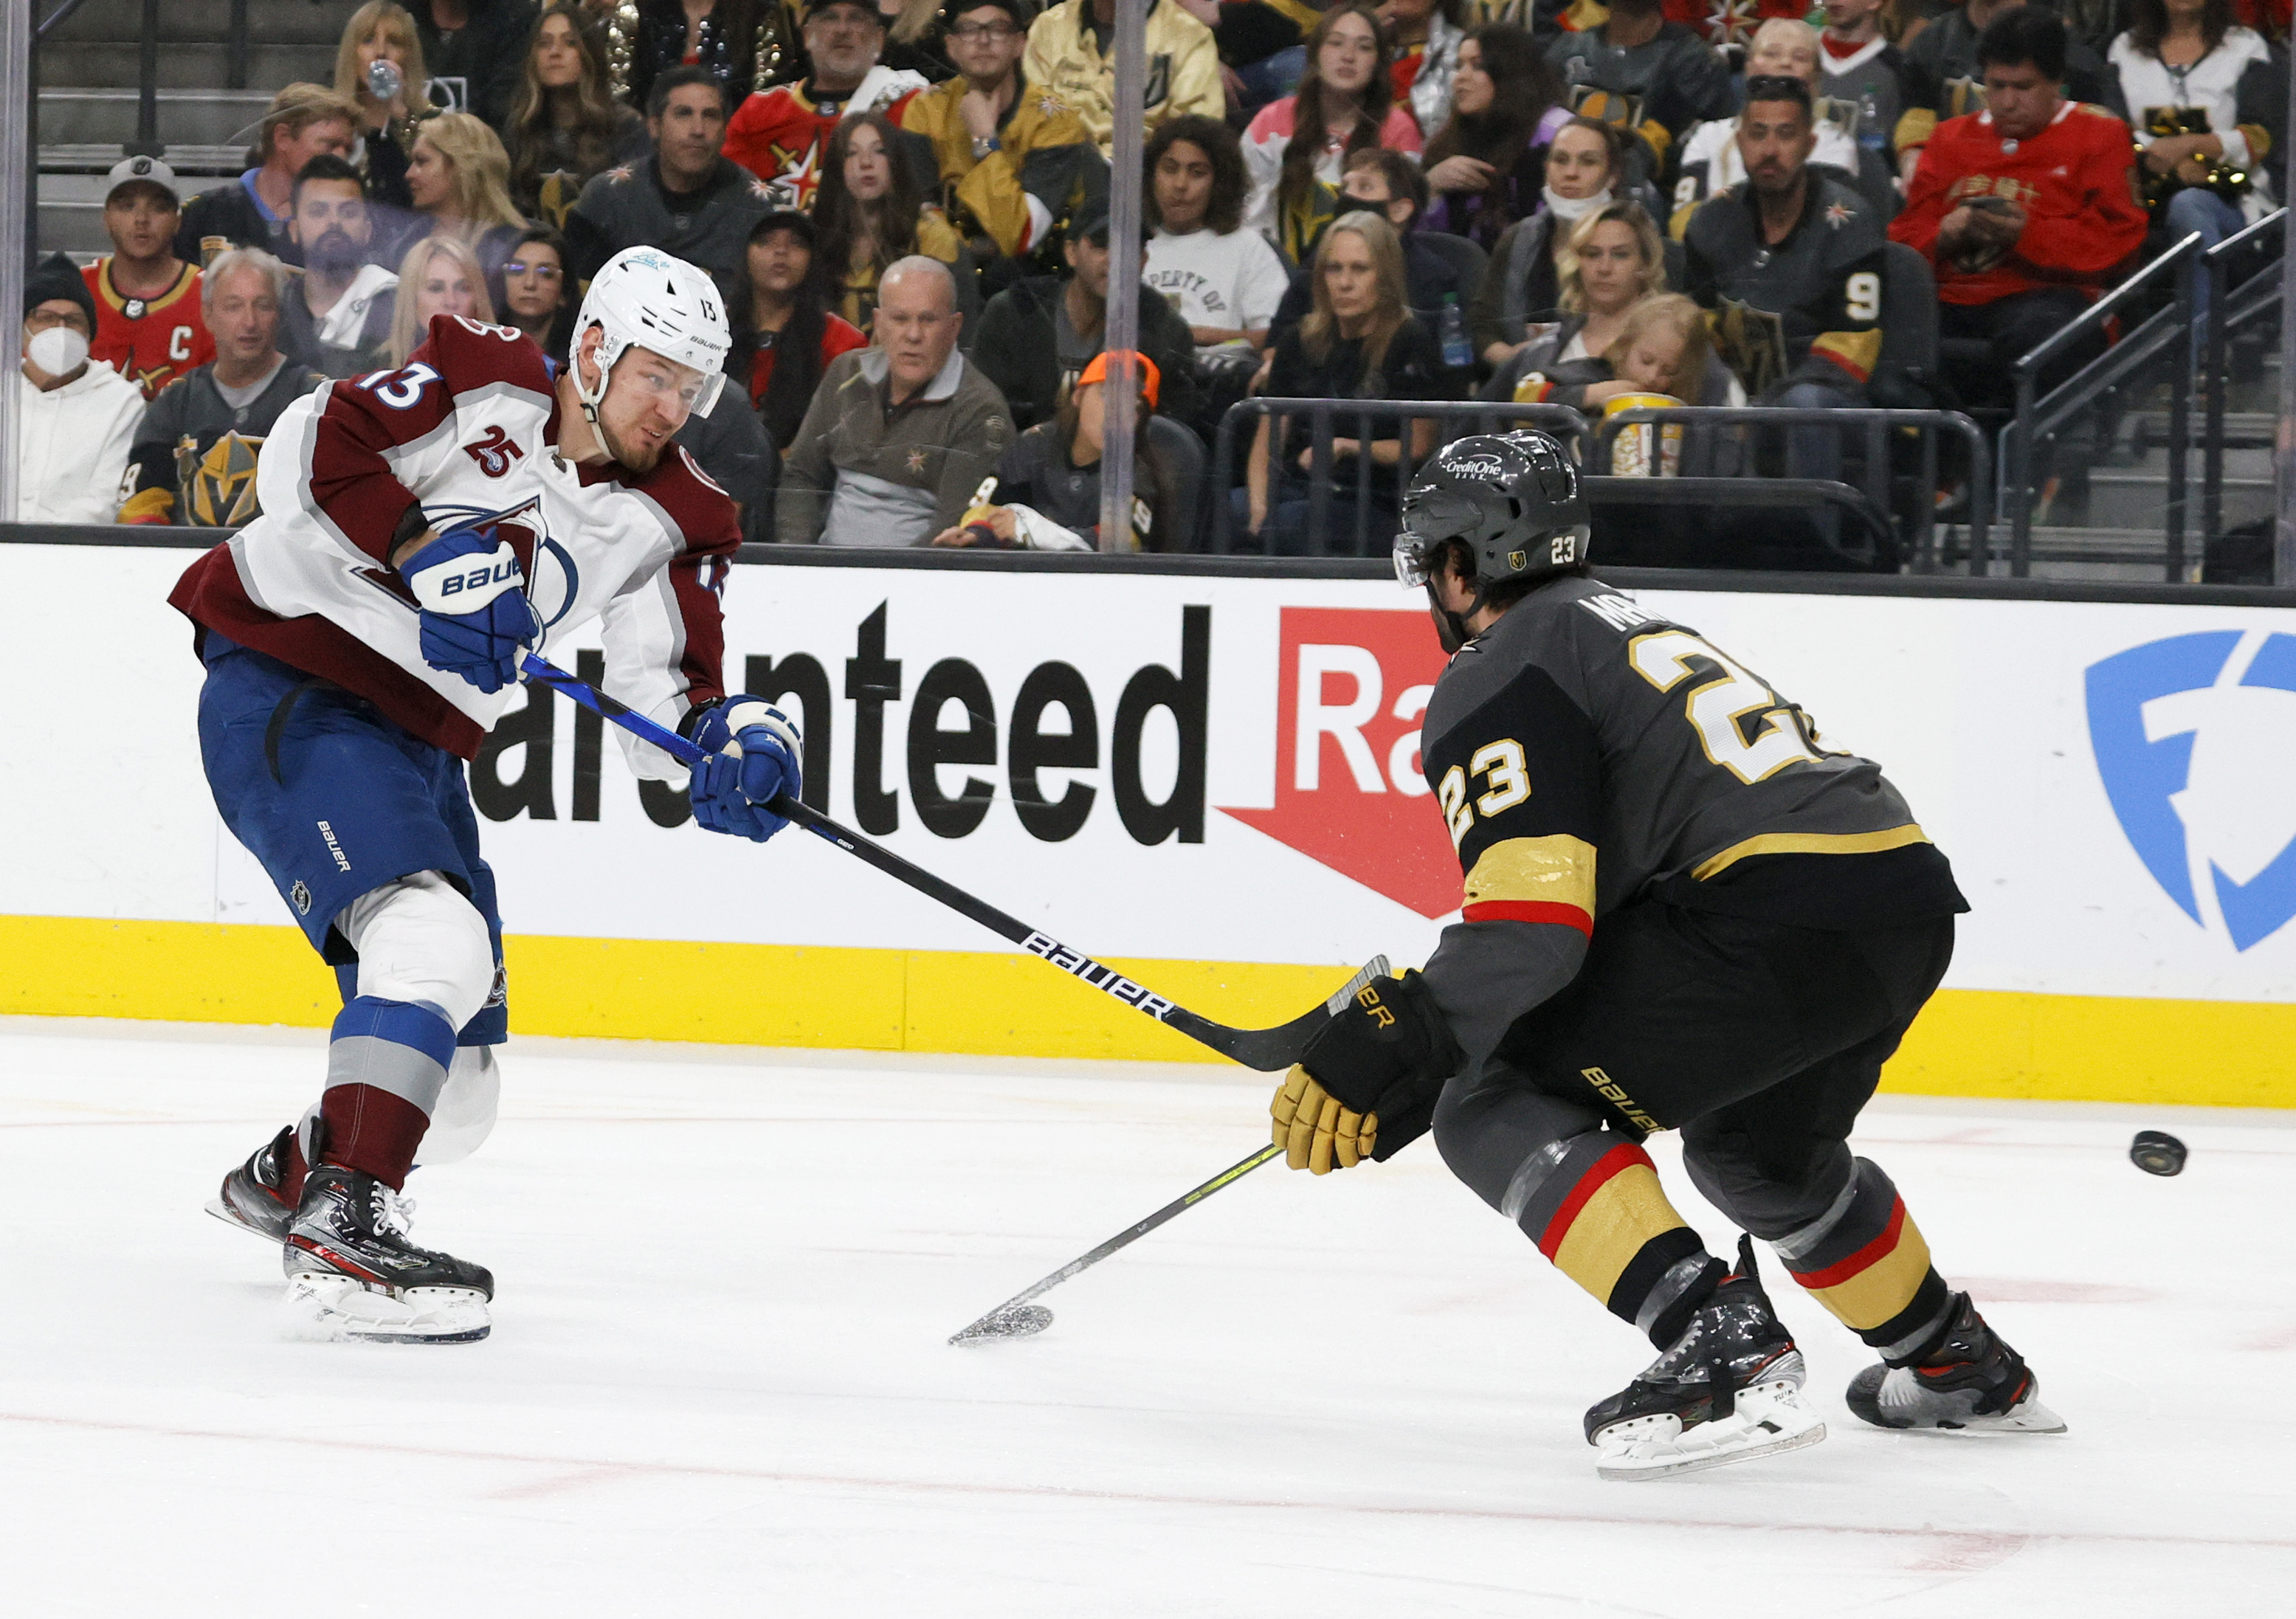 Valeri Nichushkin #13 of the Colorado Avalanche shoots against Alec Martinez #23 of the Vegas Golden Knights in the third period in Game Four of the Second Round of the 2021 Stanley Cup Playoffs at T-Mobile Arena on June 6, 2021 in Las Vegas, Nevada. The Golden Knights defeated the Avalanche 5-1.